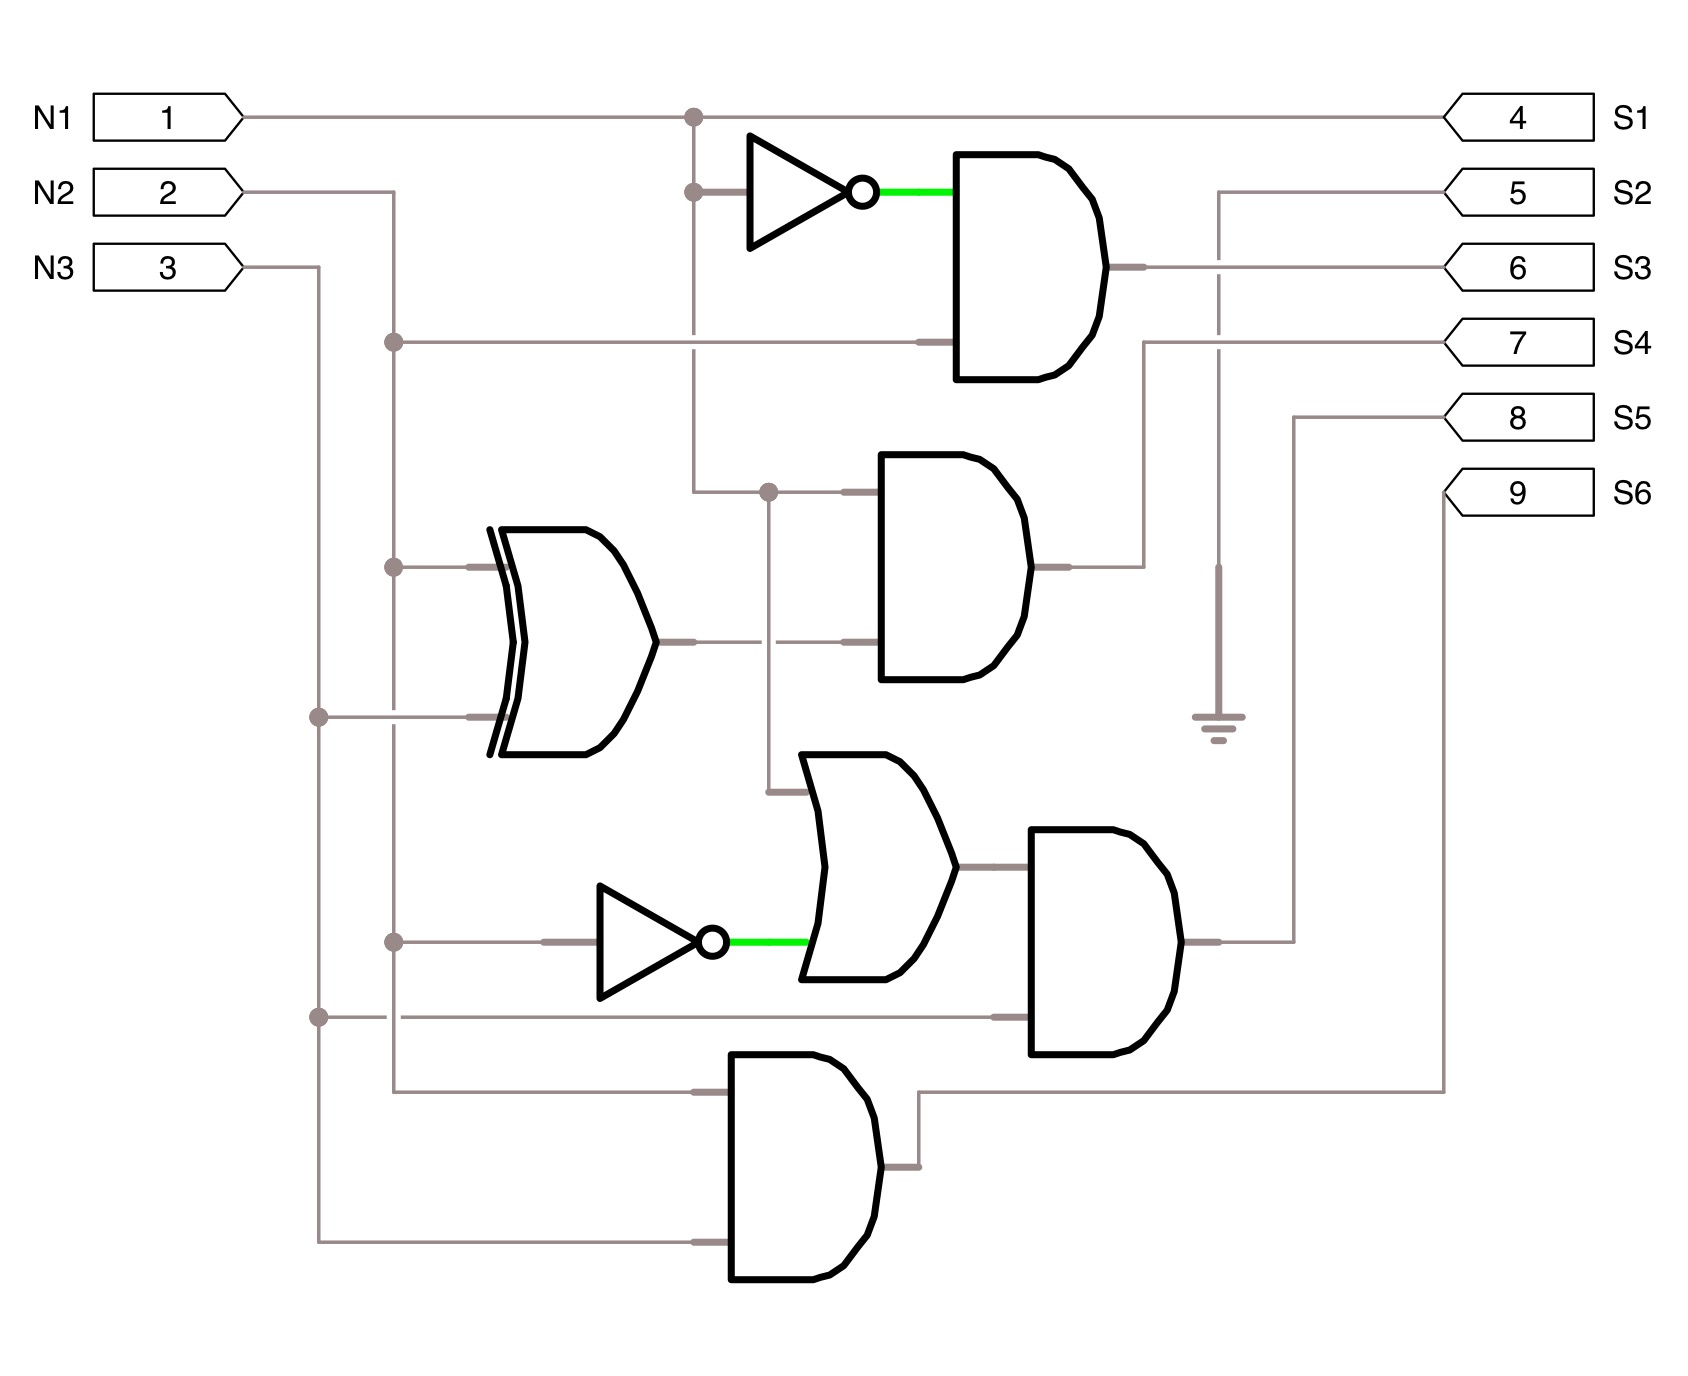 Logic Gates Truth Tables 3 Inputs